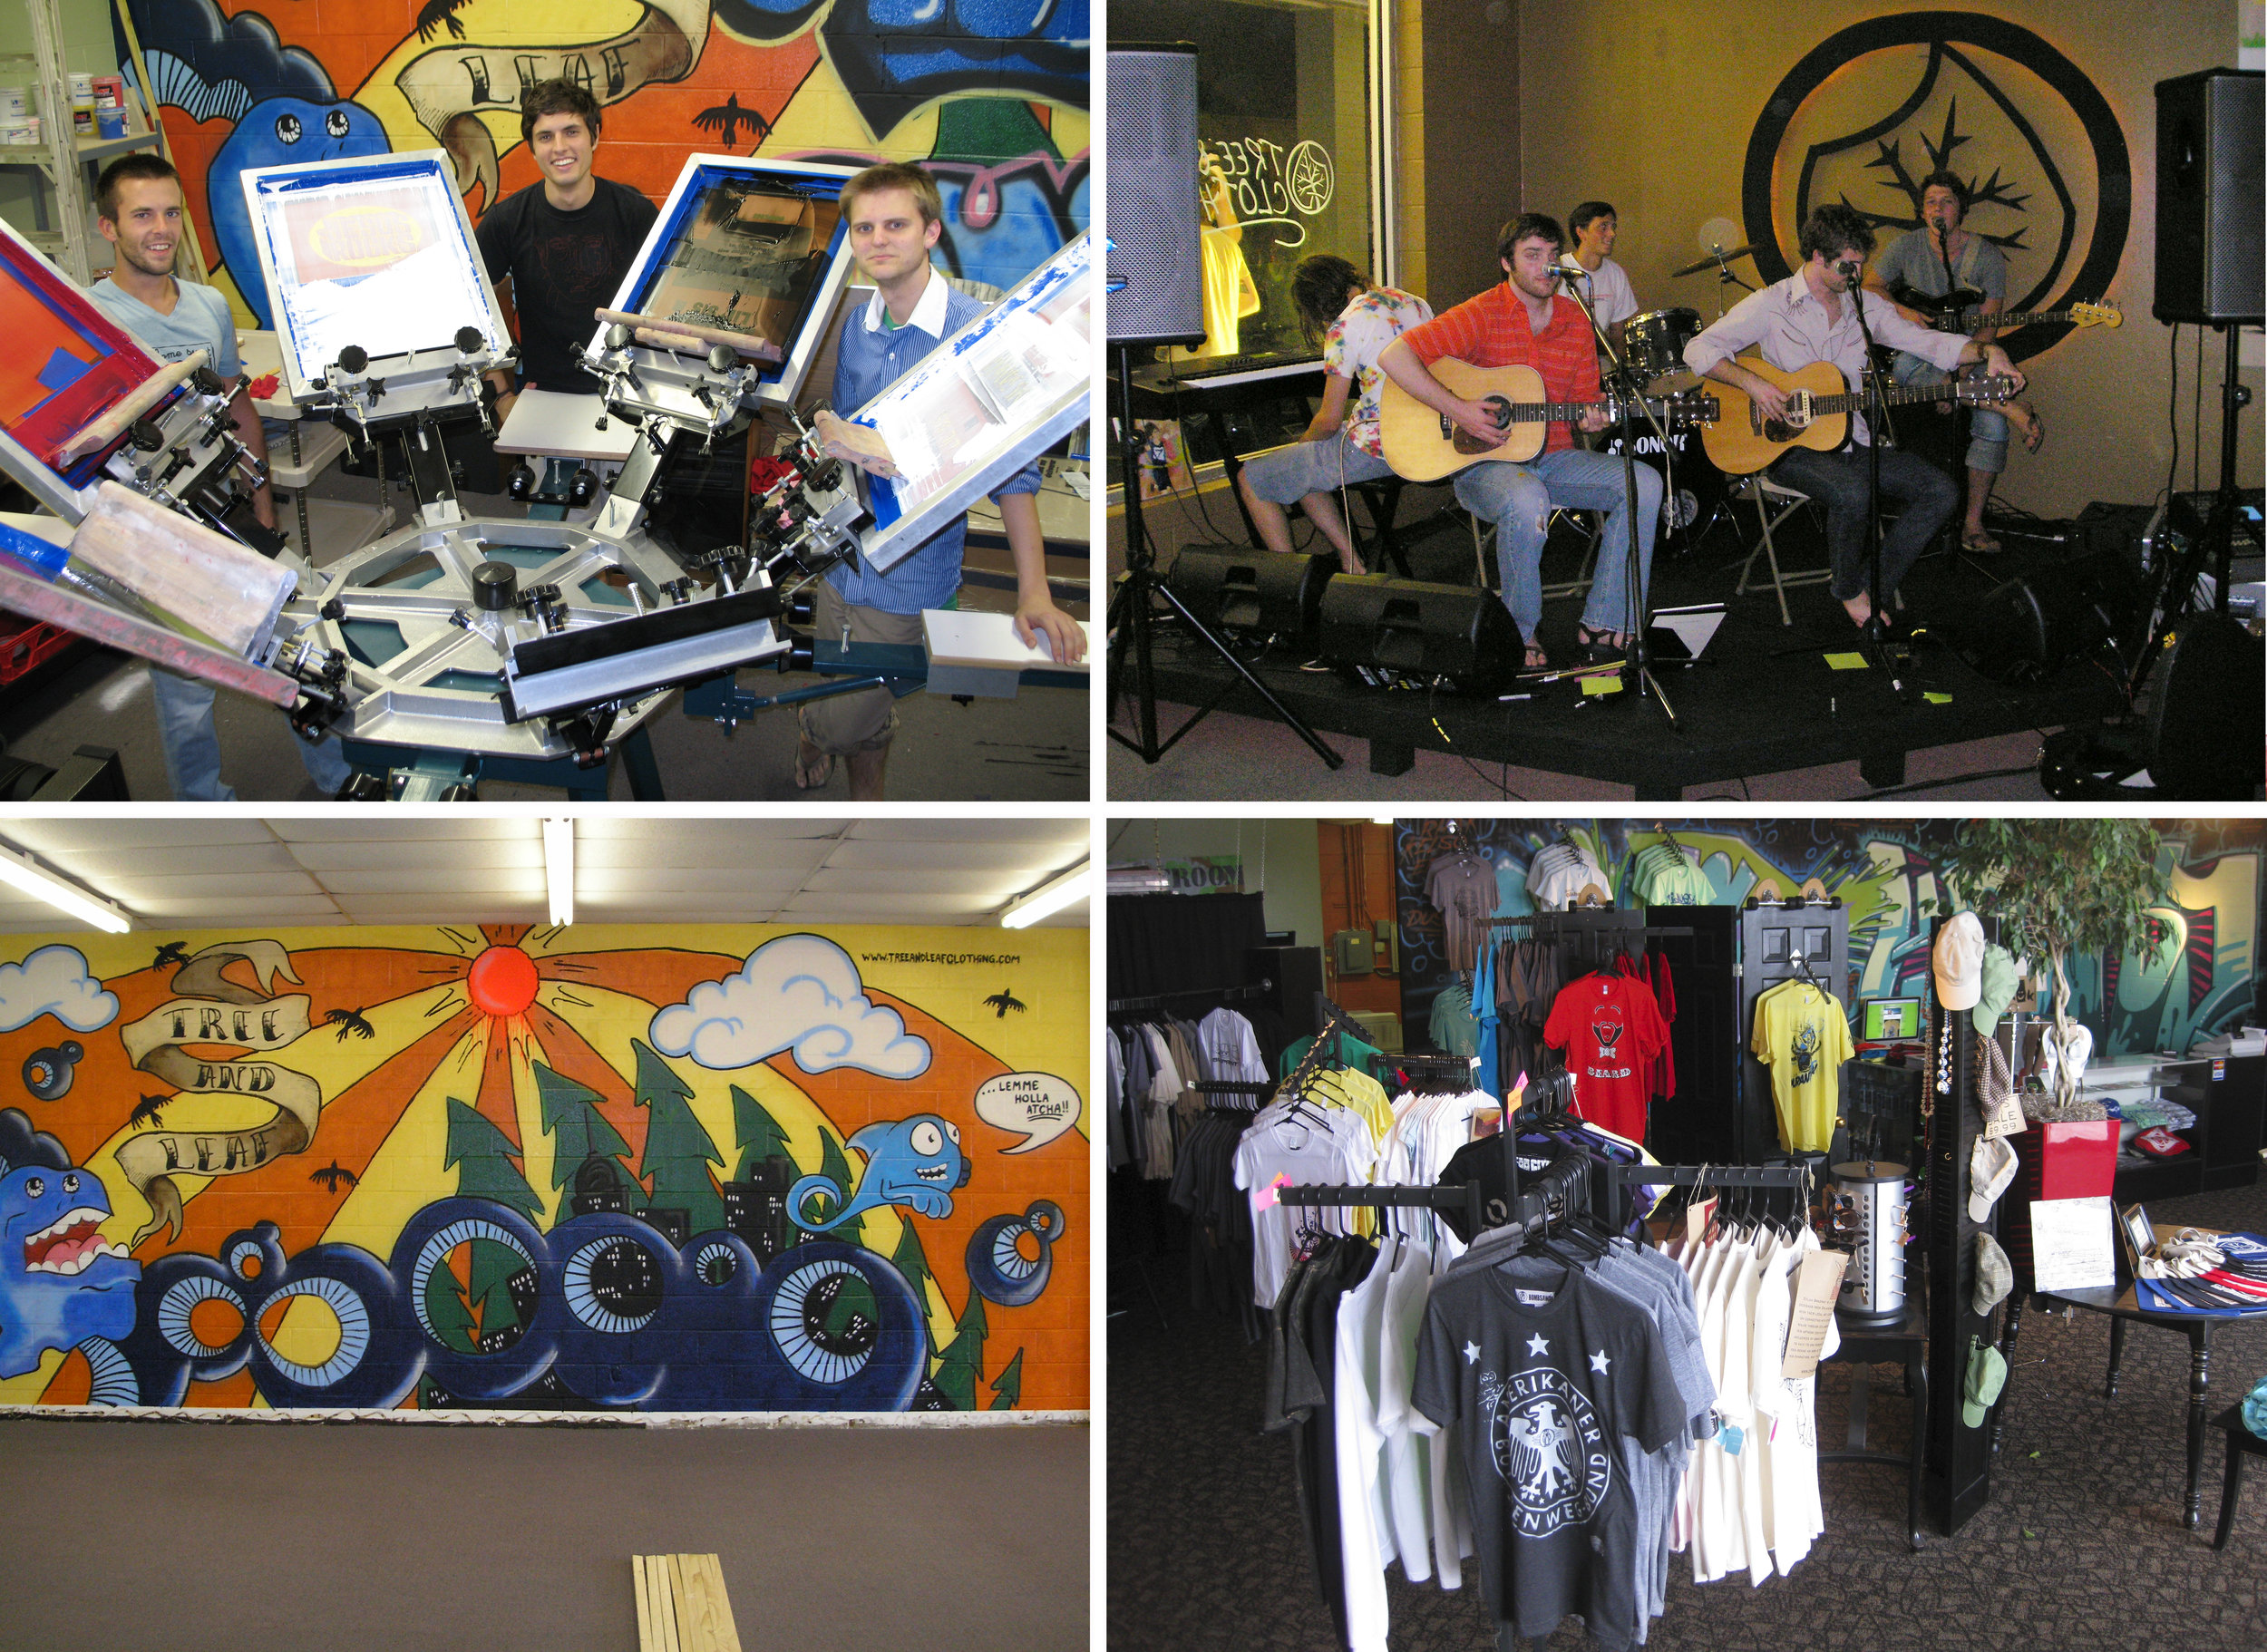 Our first storefront location was at 8405 N. Rockwell Ave. in the back of Rockwell Plaza. We opened it on a shoestring budget in 2007.I painted my first mural in the back (it was horrible). We built canvases for local artists to paint; Erin Robinson, Kaleb Nimz, Caleb Jacks, Emma Robertson, and Jake Sloan. We had a grand opening party with performances by The Legend of Junior Sapp,Sherree Chamberlain, and Josh Roberts. It's fun to think that two of the members of The Legend of Junior Sapp (Joey Morris and Roger Eleftherakis) would go on to be our neighbors in the Plaza as co-owners of The Mule.  In our first store we also carried clothing by PS Clothing, Bombs Away, GRP FLY, Blooprint,and Dead Cities. All the clothing vendors were local, and we also began selling Montana spray paint around this time.  Kaleb Nimz was the first employee we had in this space. He was really essential in influencing my art style, and the overall direction of the shop. His emphasis on typography, graffiti, and design really influenced my print work.